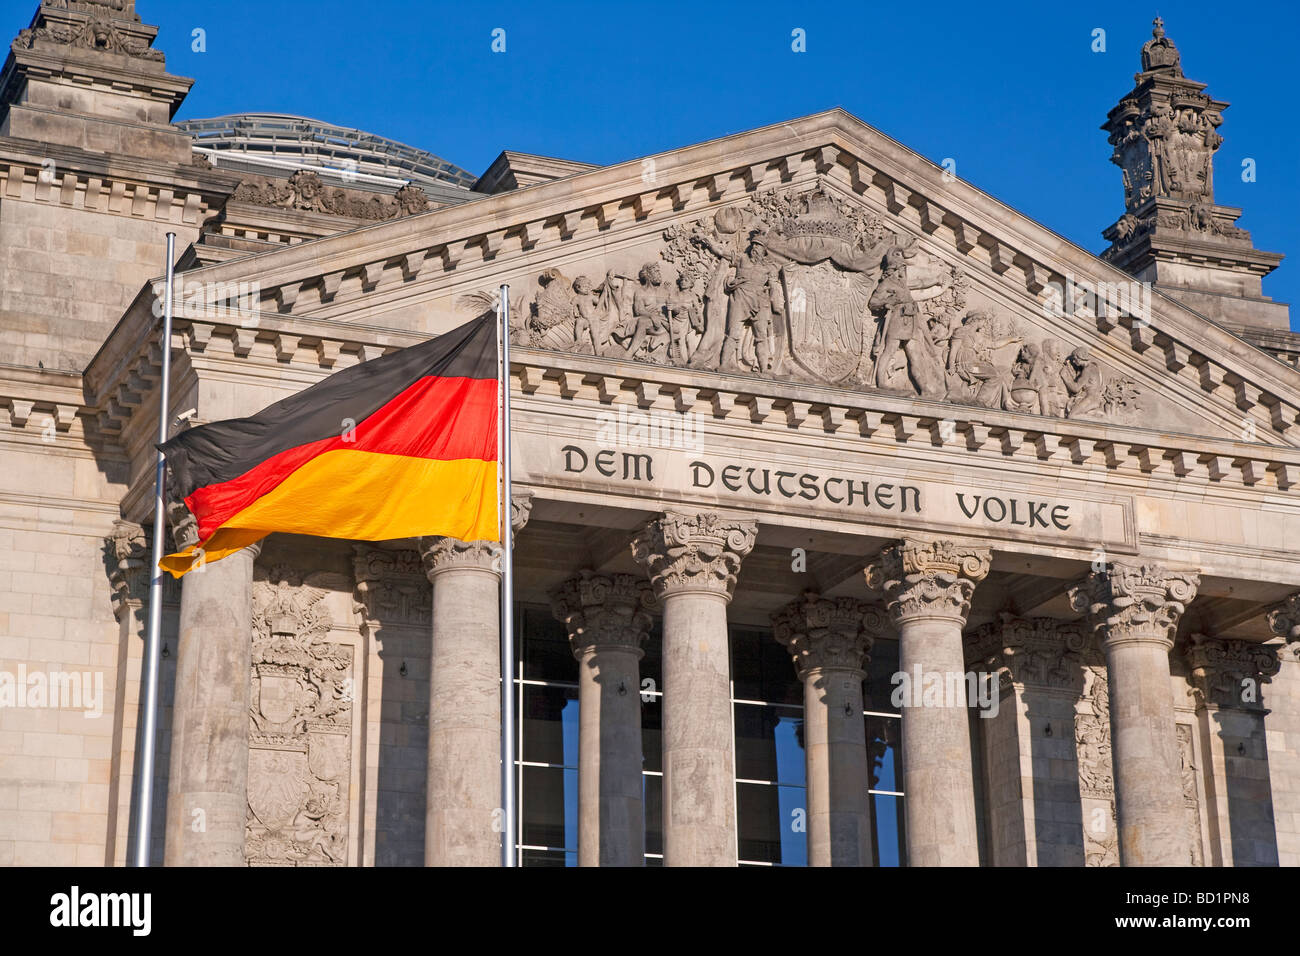 Europe Germany Berlin Reichstag German Parliament building German flag in foreground - Stock Image